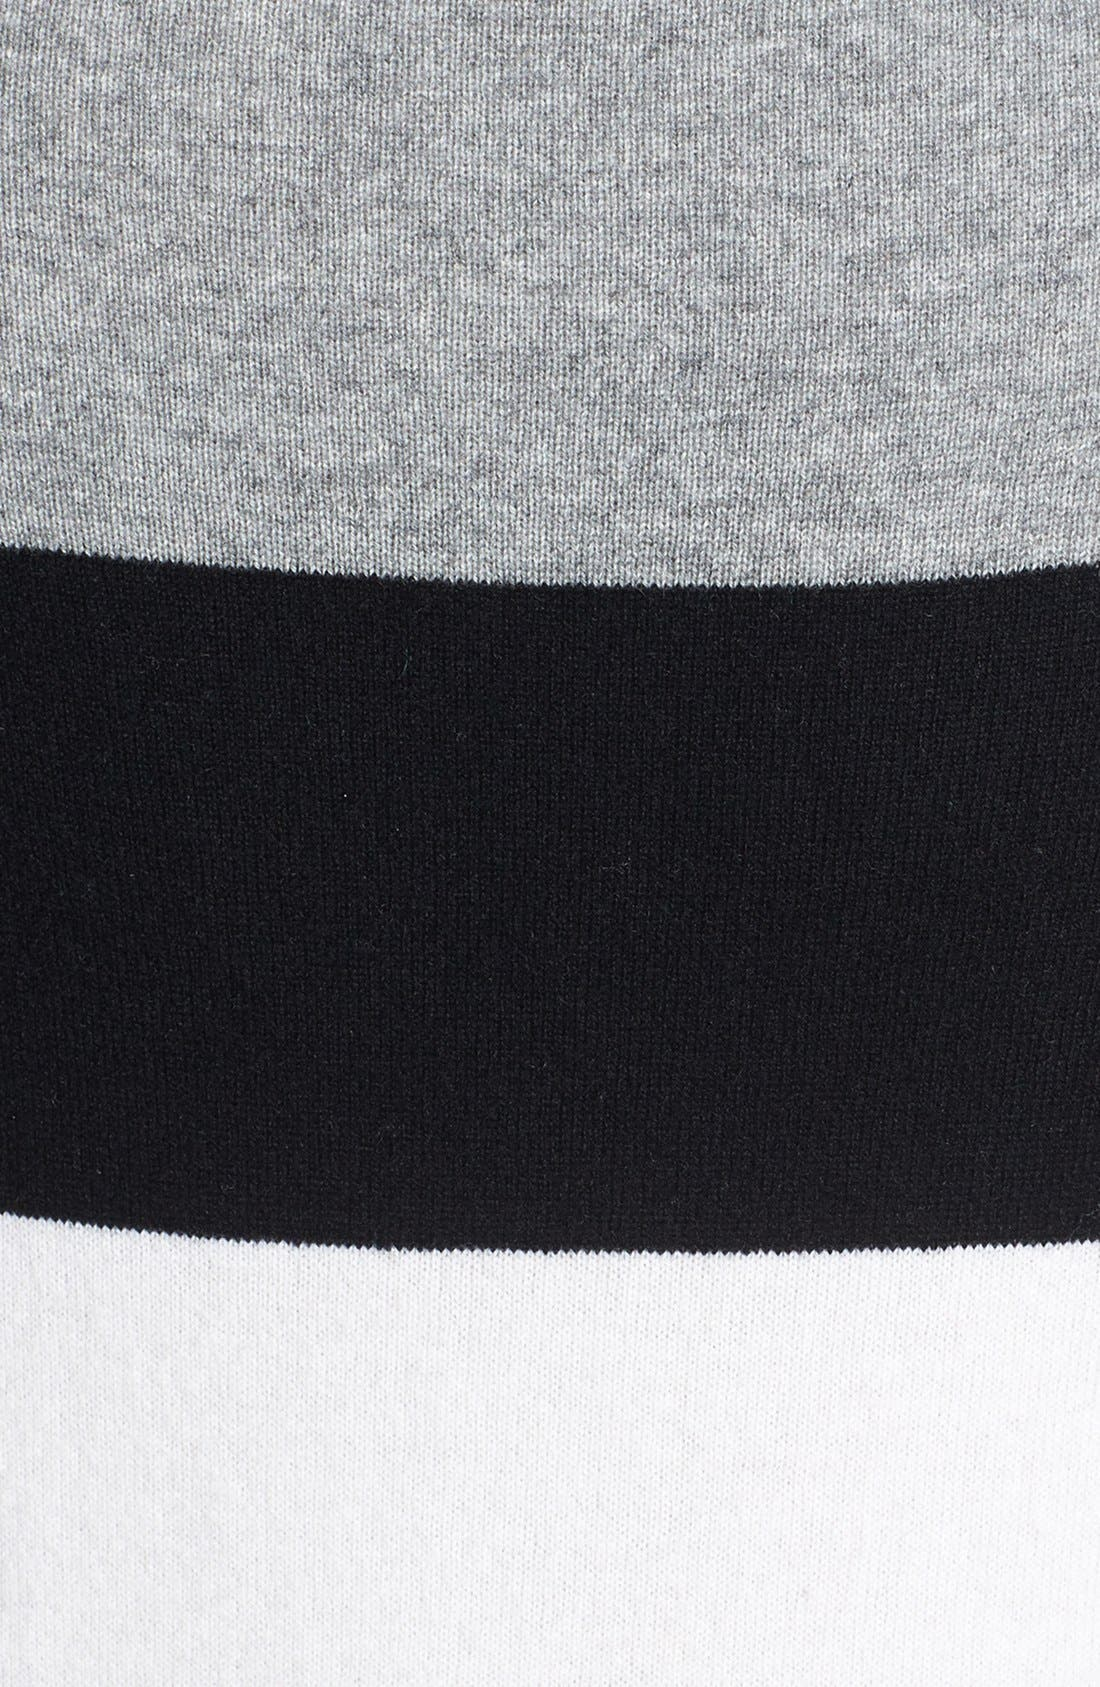 Alternate Image 3  - Nordstrom Collection Colorblock Cashmere Sweater